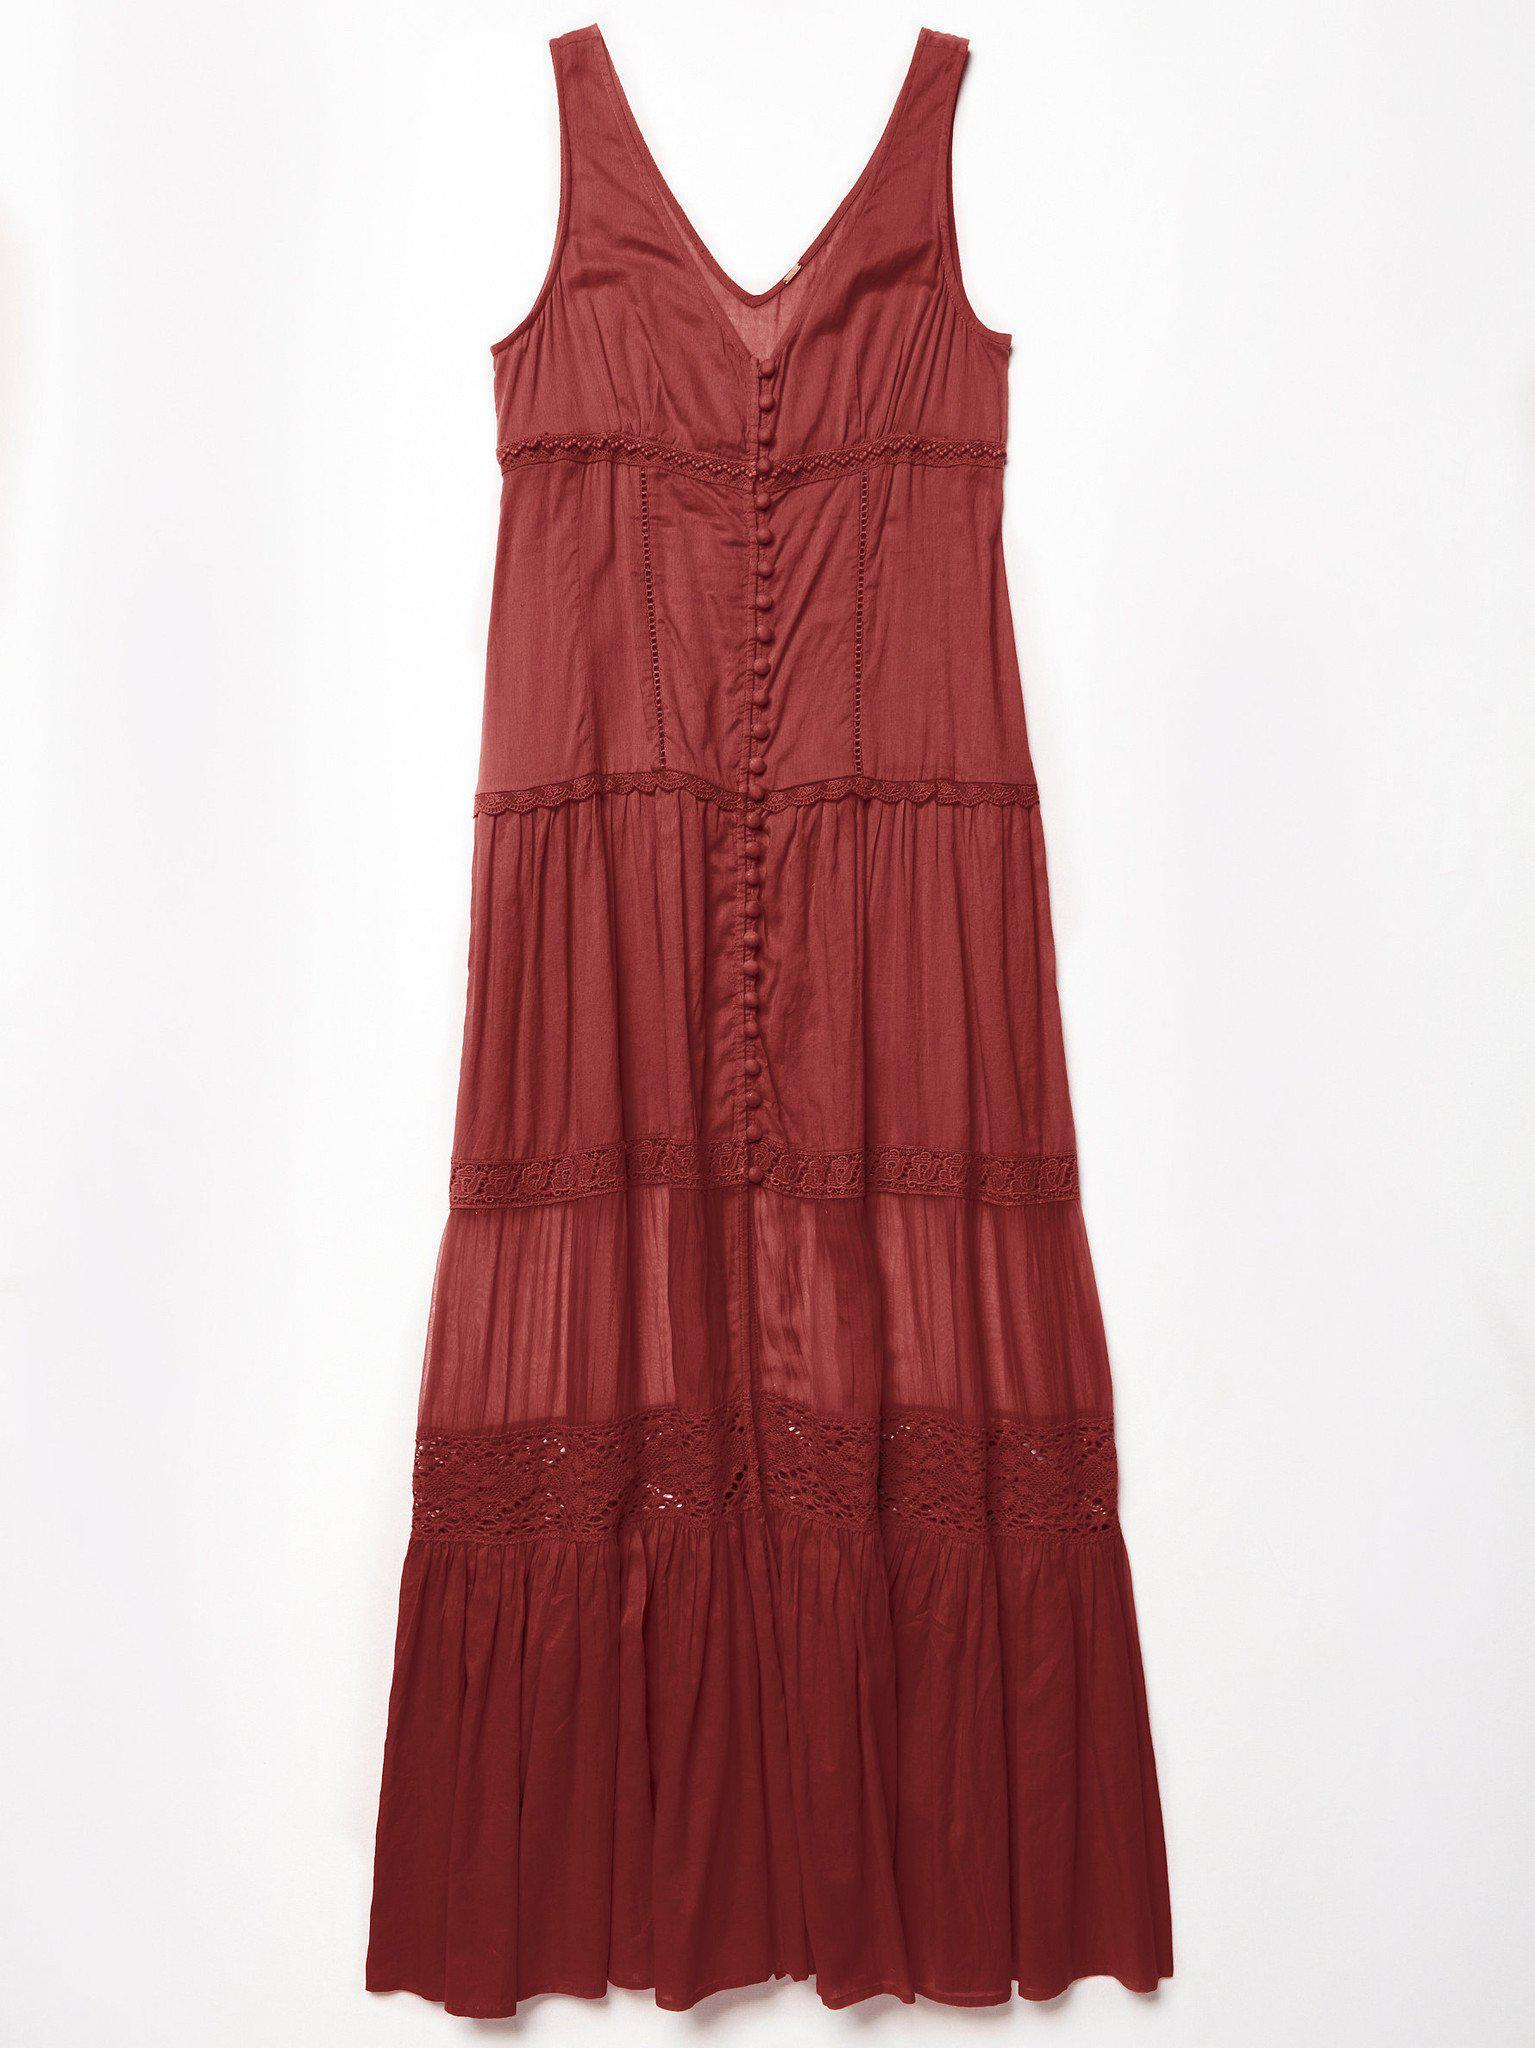 Collarless Stripes Sleeveless Bodycon Dresses that come